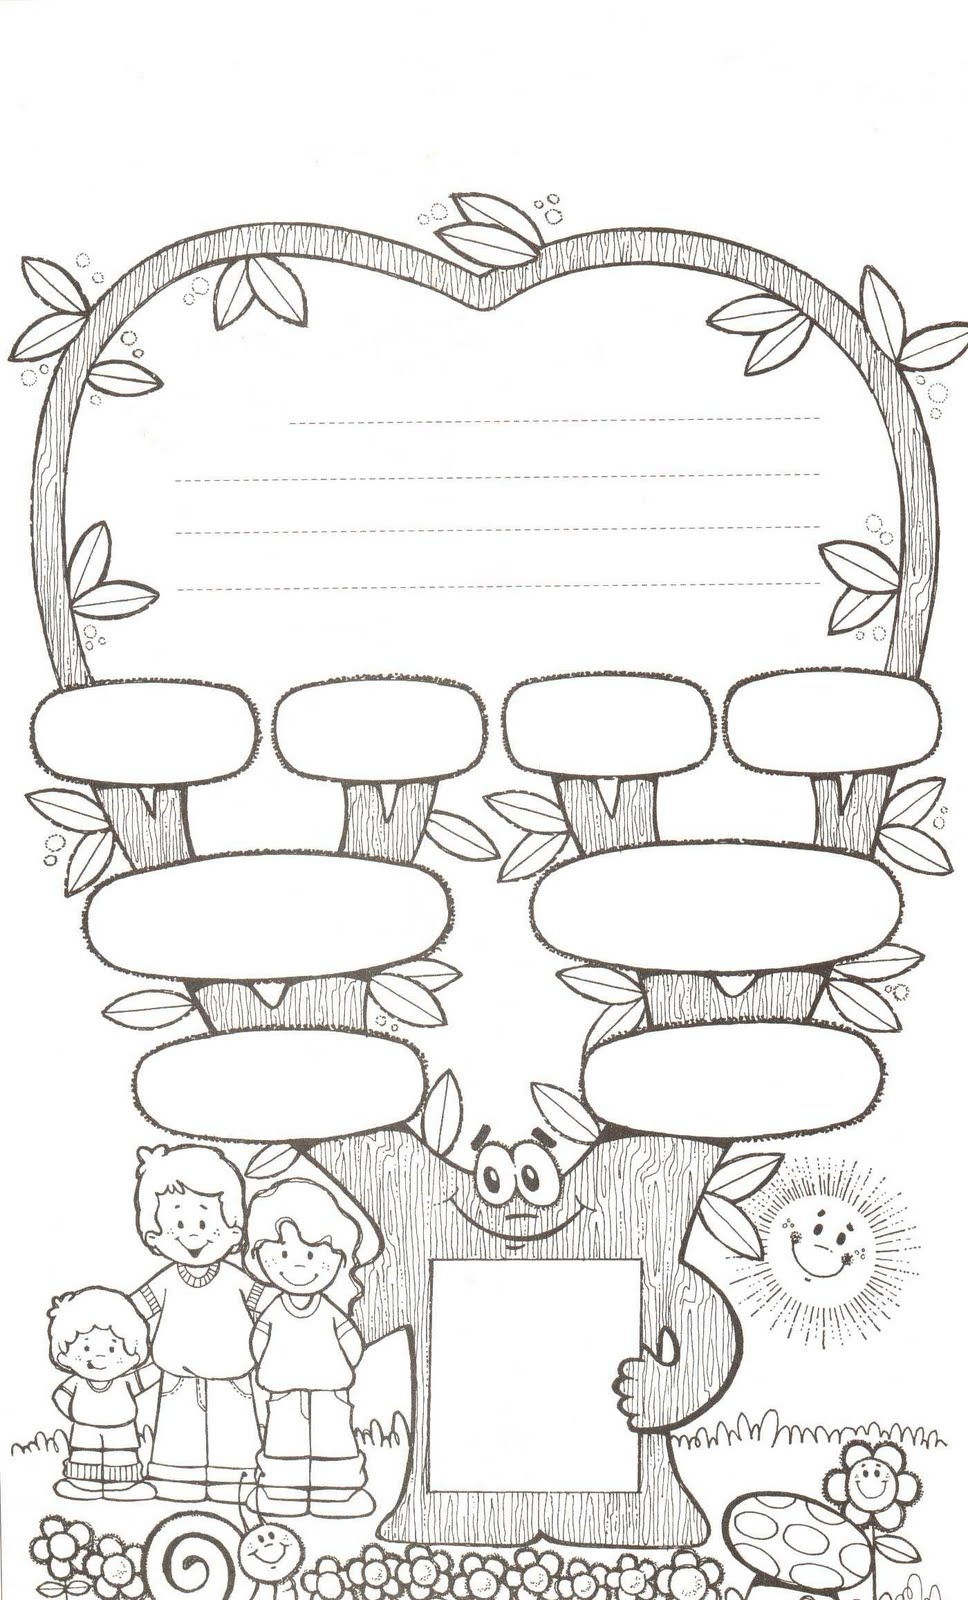 Printables Family Tree Worksheet Printable 1000 images about family printables on pinterest tree learn more at 1 bp blogspot com 968 1600worksheet printabletree